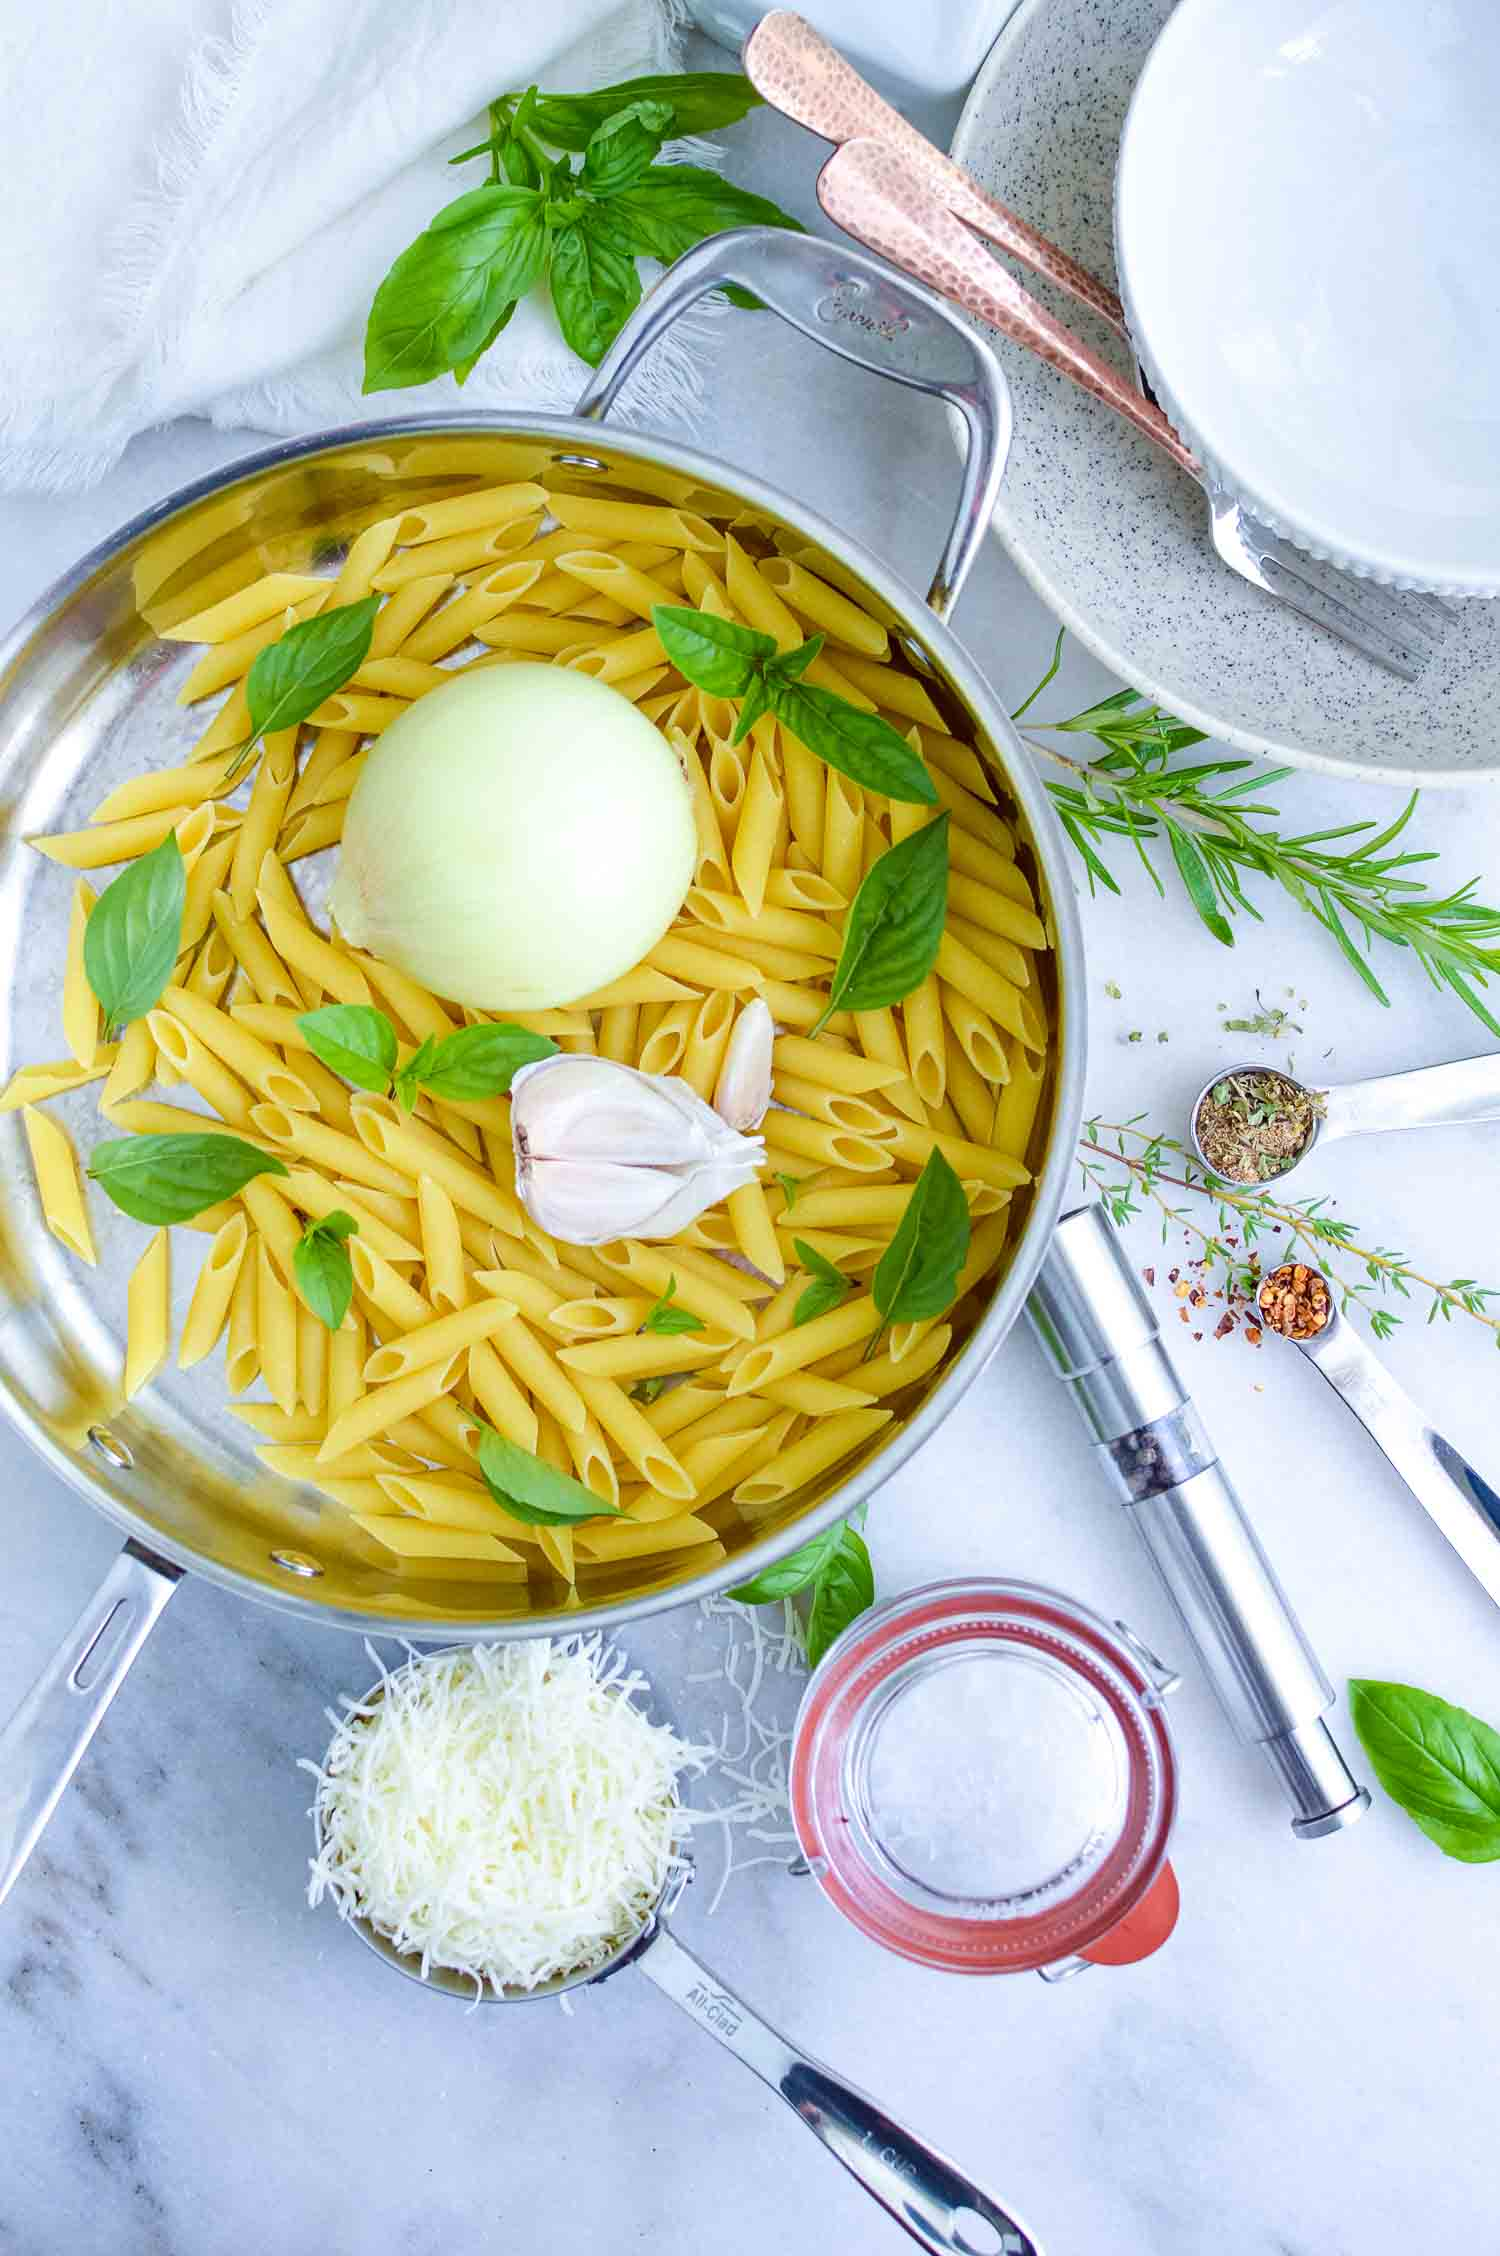 A silver pan with uncooked pasta, basil, onion, garlic in it with spices, cheese and water in containers around it.